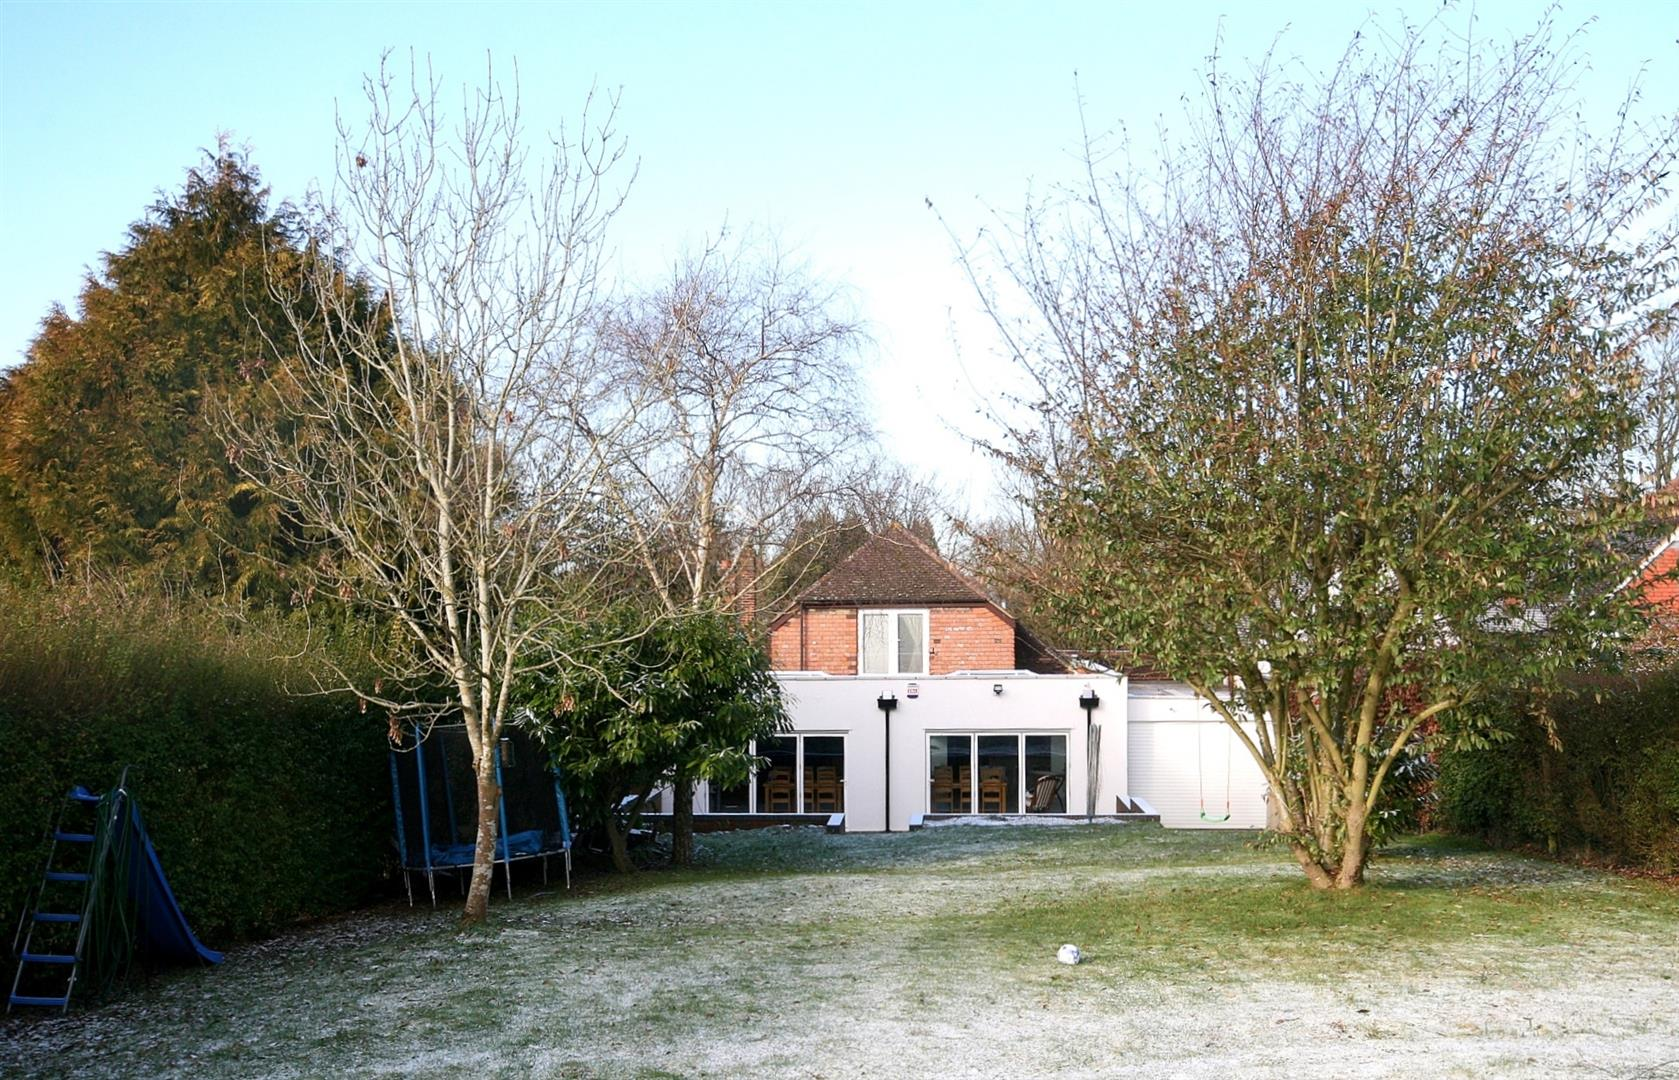 4 Bedrooms Detached House for sale in Tring Road, Dunstable, Beds